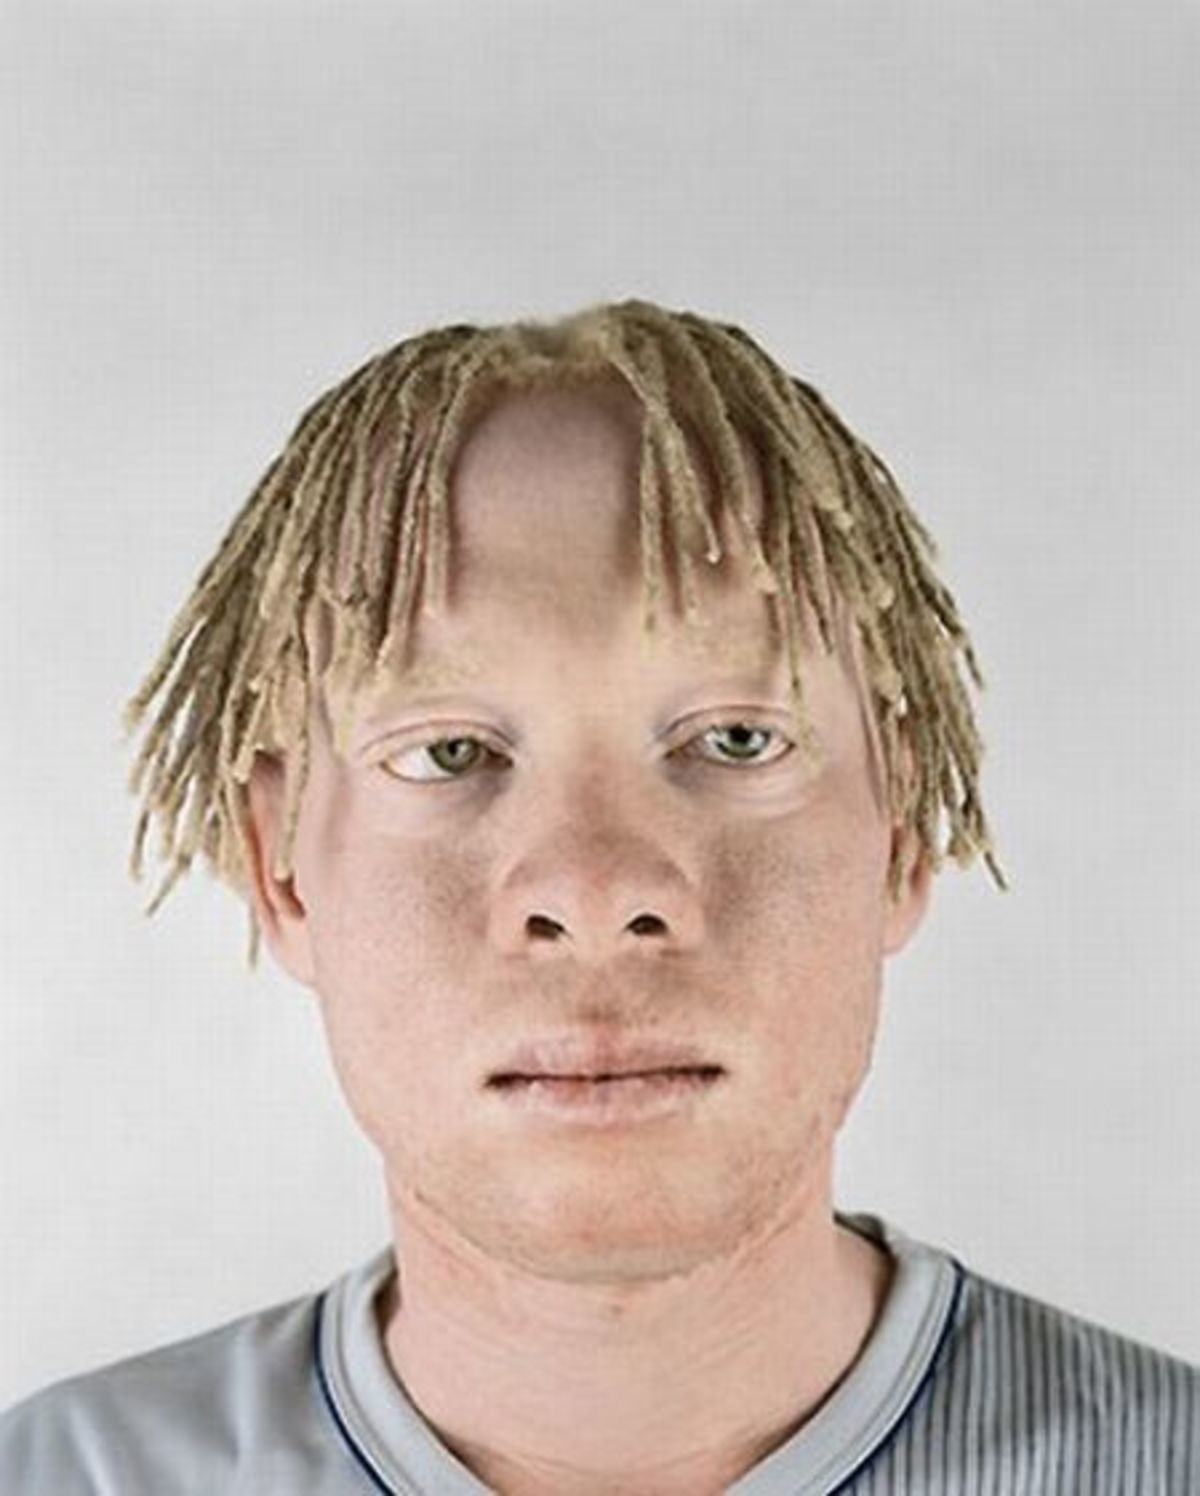 Albino black people. .. Some of those aren't albinos they have a melenism defect but aren't true albinos. Some of the ones with color in their eyes ARE albinos though since it effects